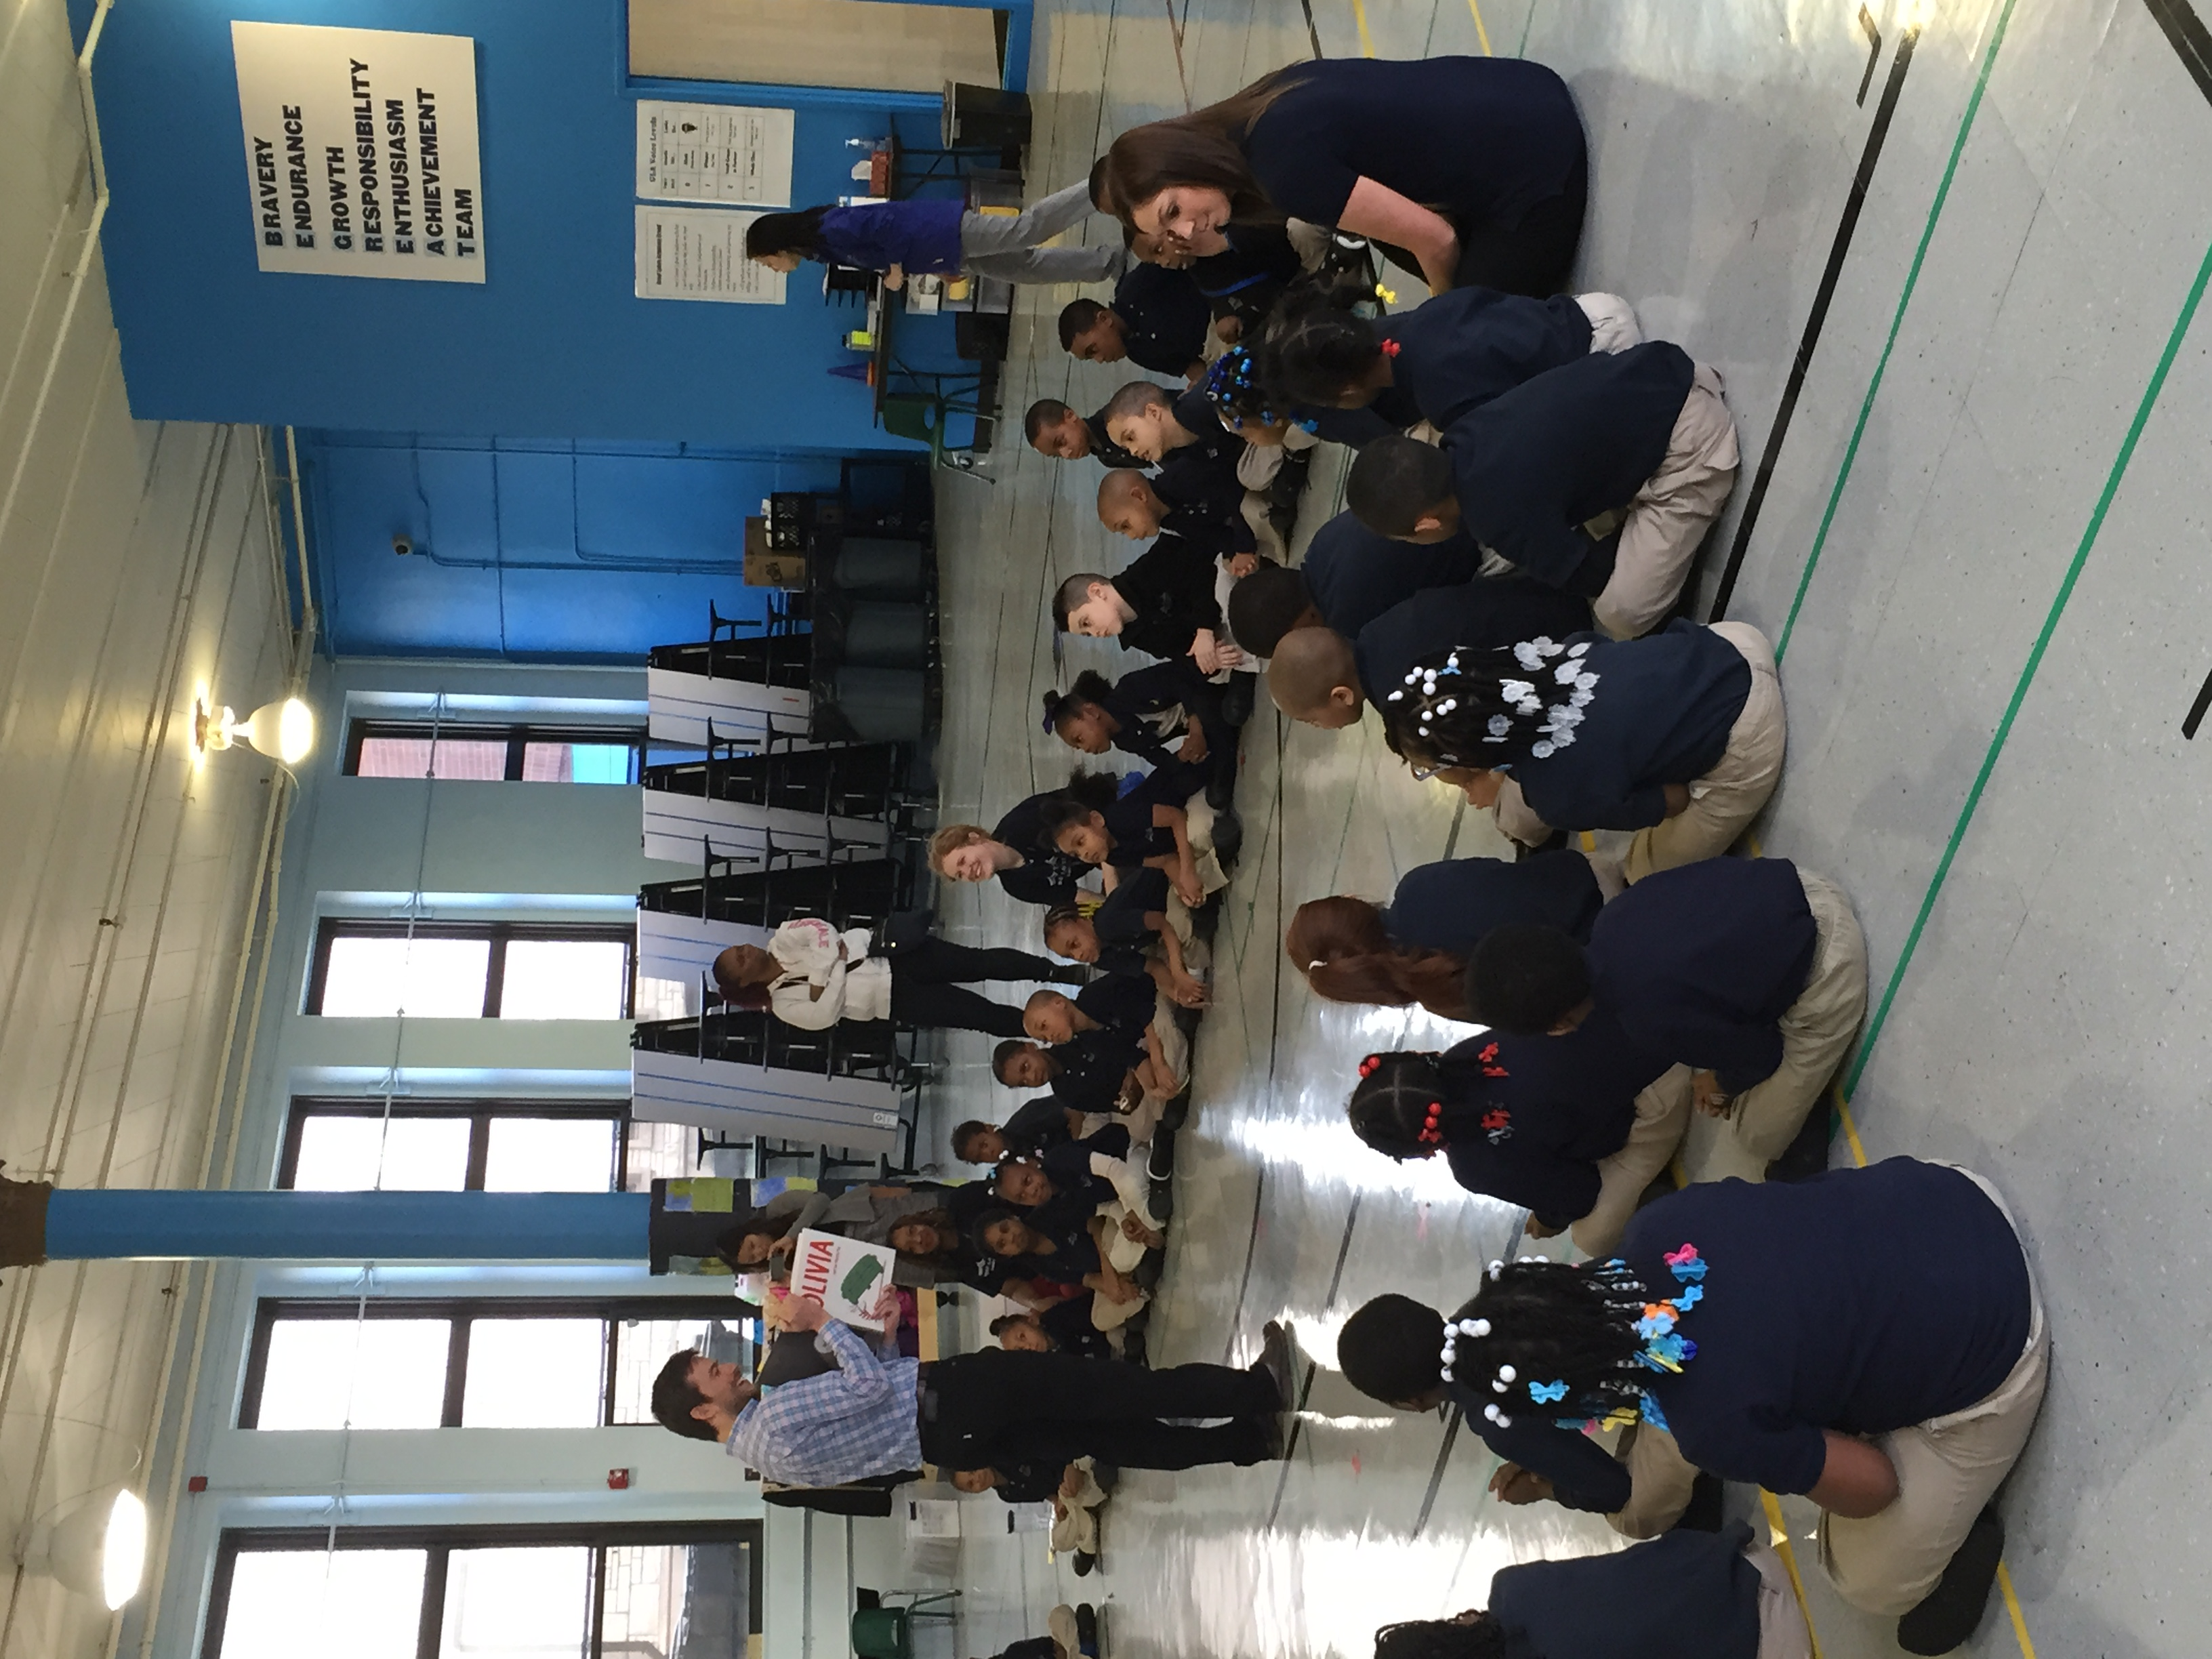 Booth-Ed co-chair Jesse Feinberg reads to students at Great Lakes Academy's weekly community celebration.